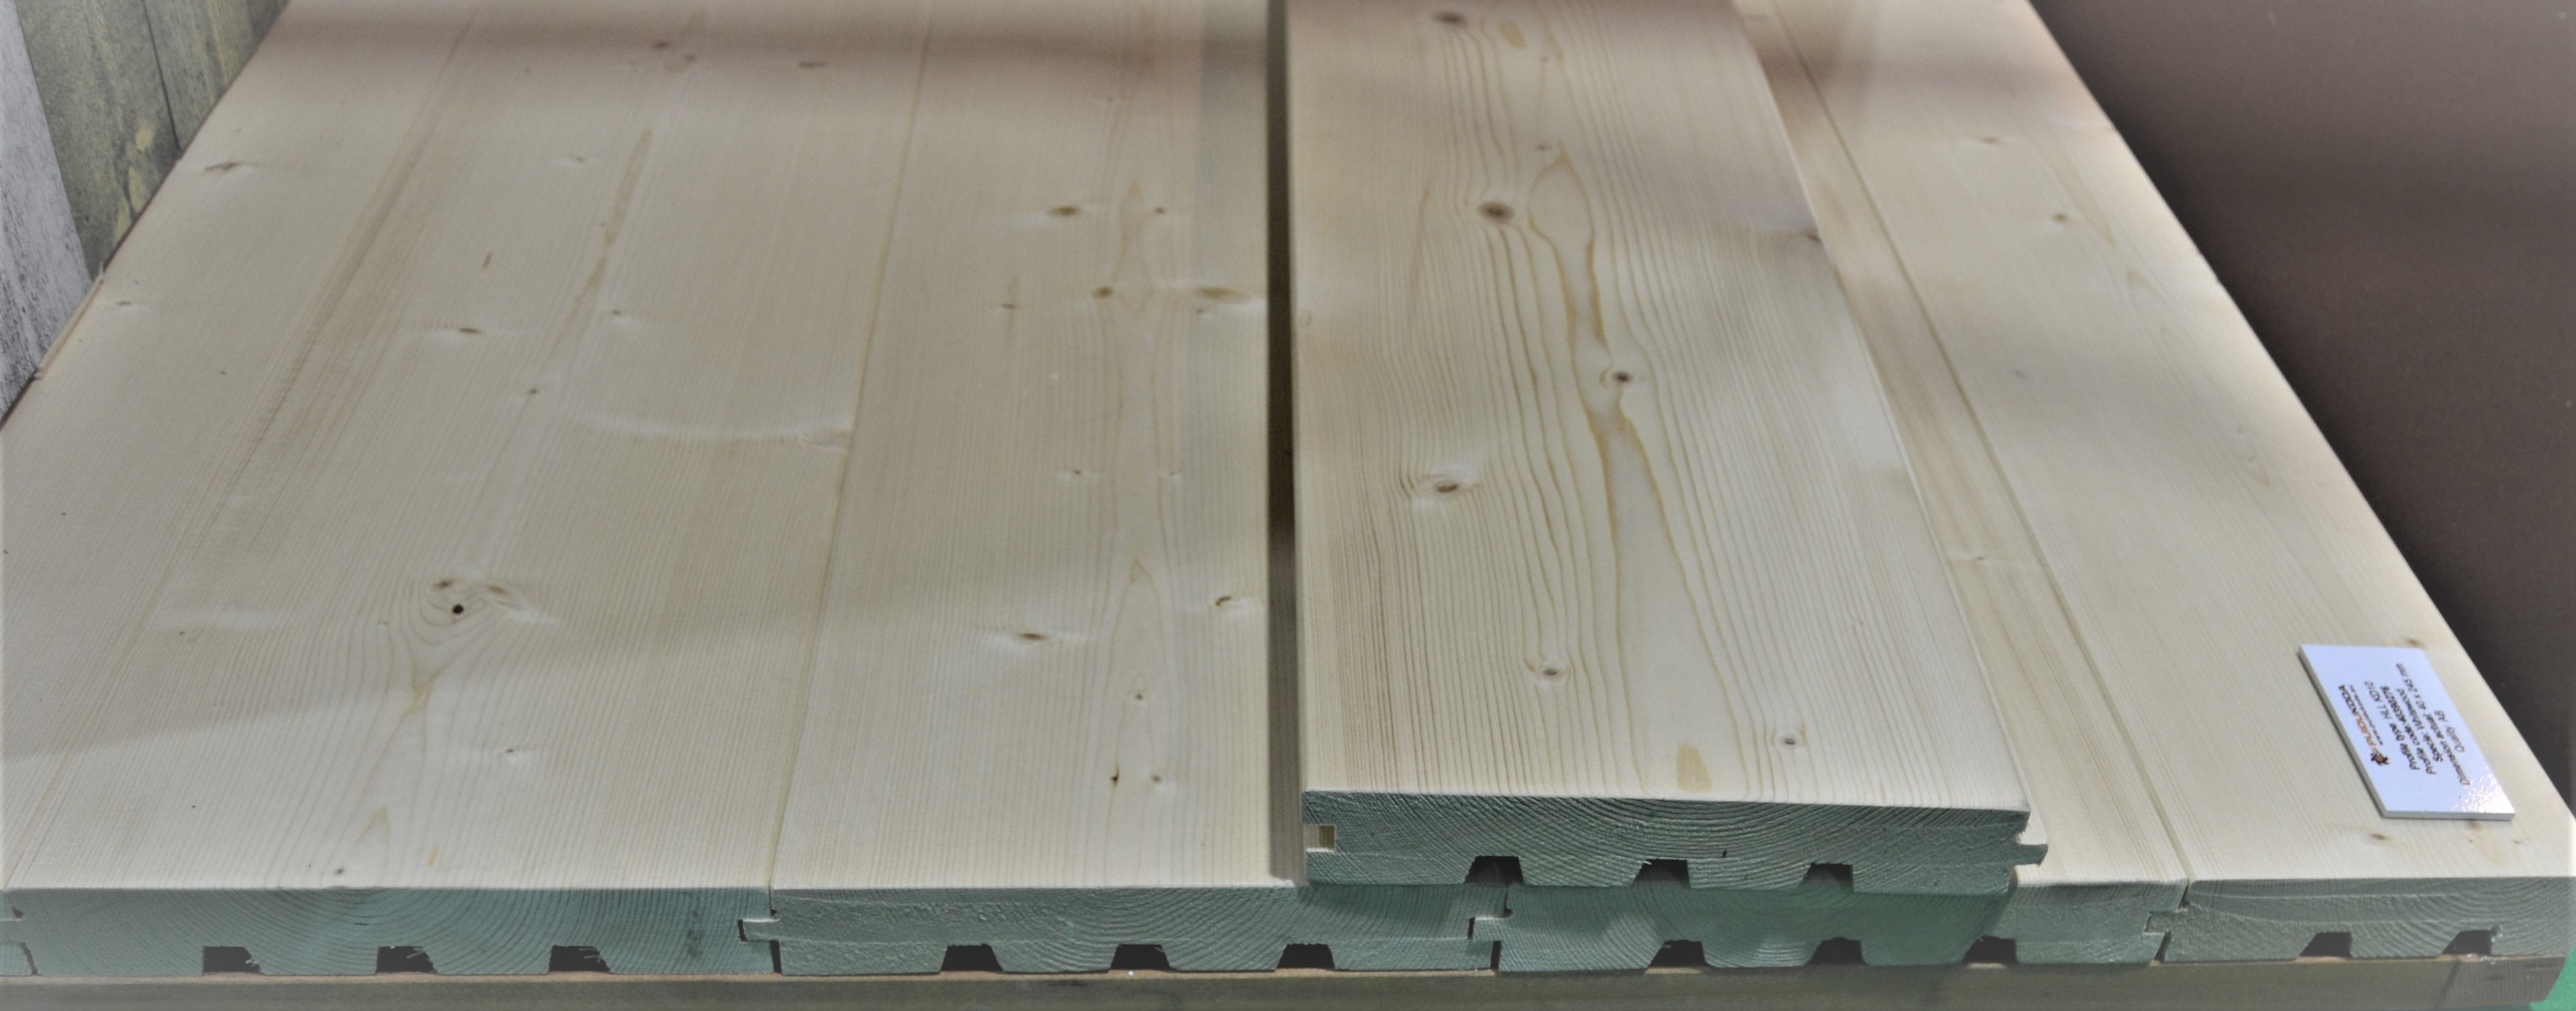 K21 Wood strip-board fine flooring-linings-floorboards specification : Wide 245mm and Thick 40mm Puidukoda